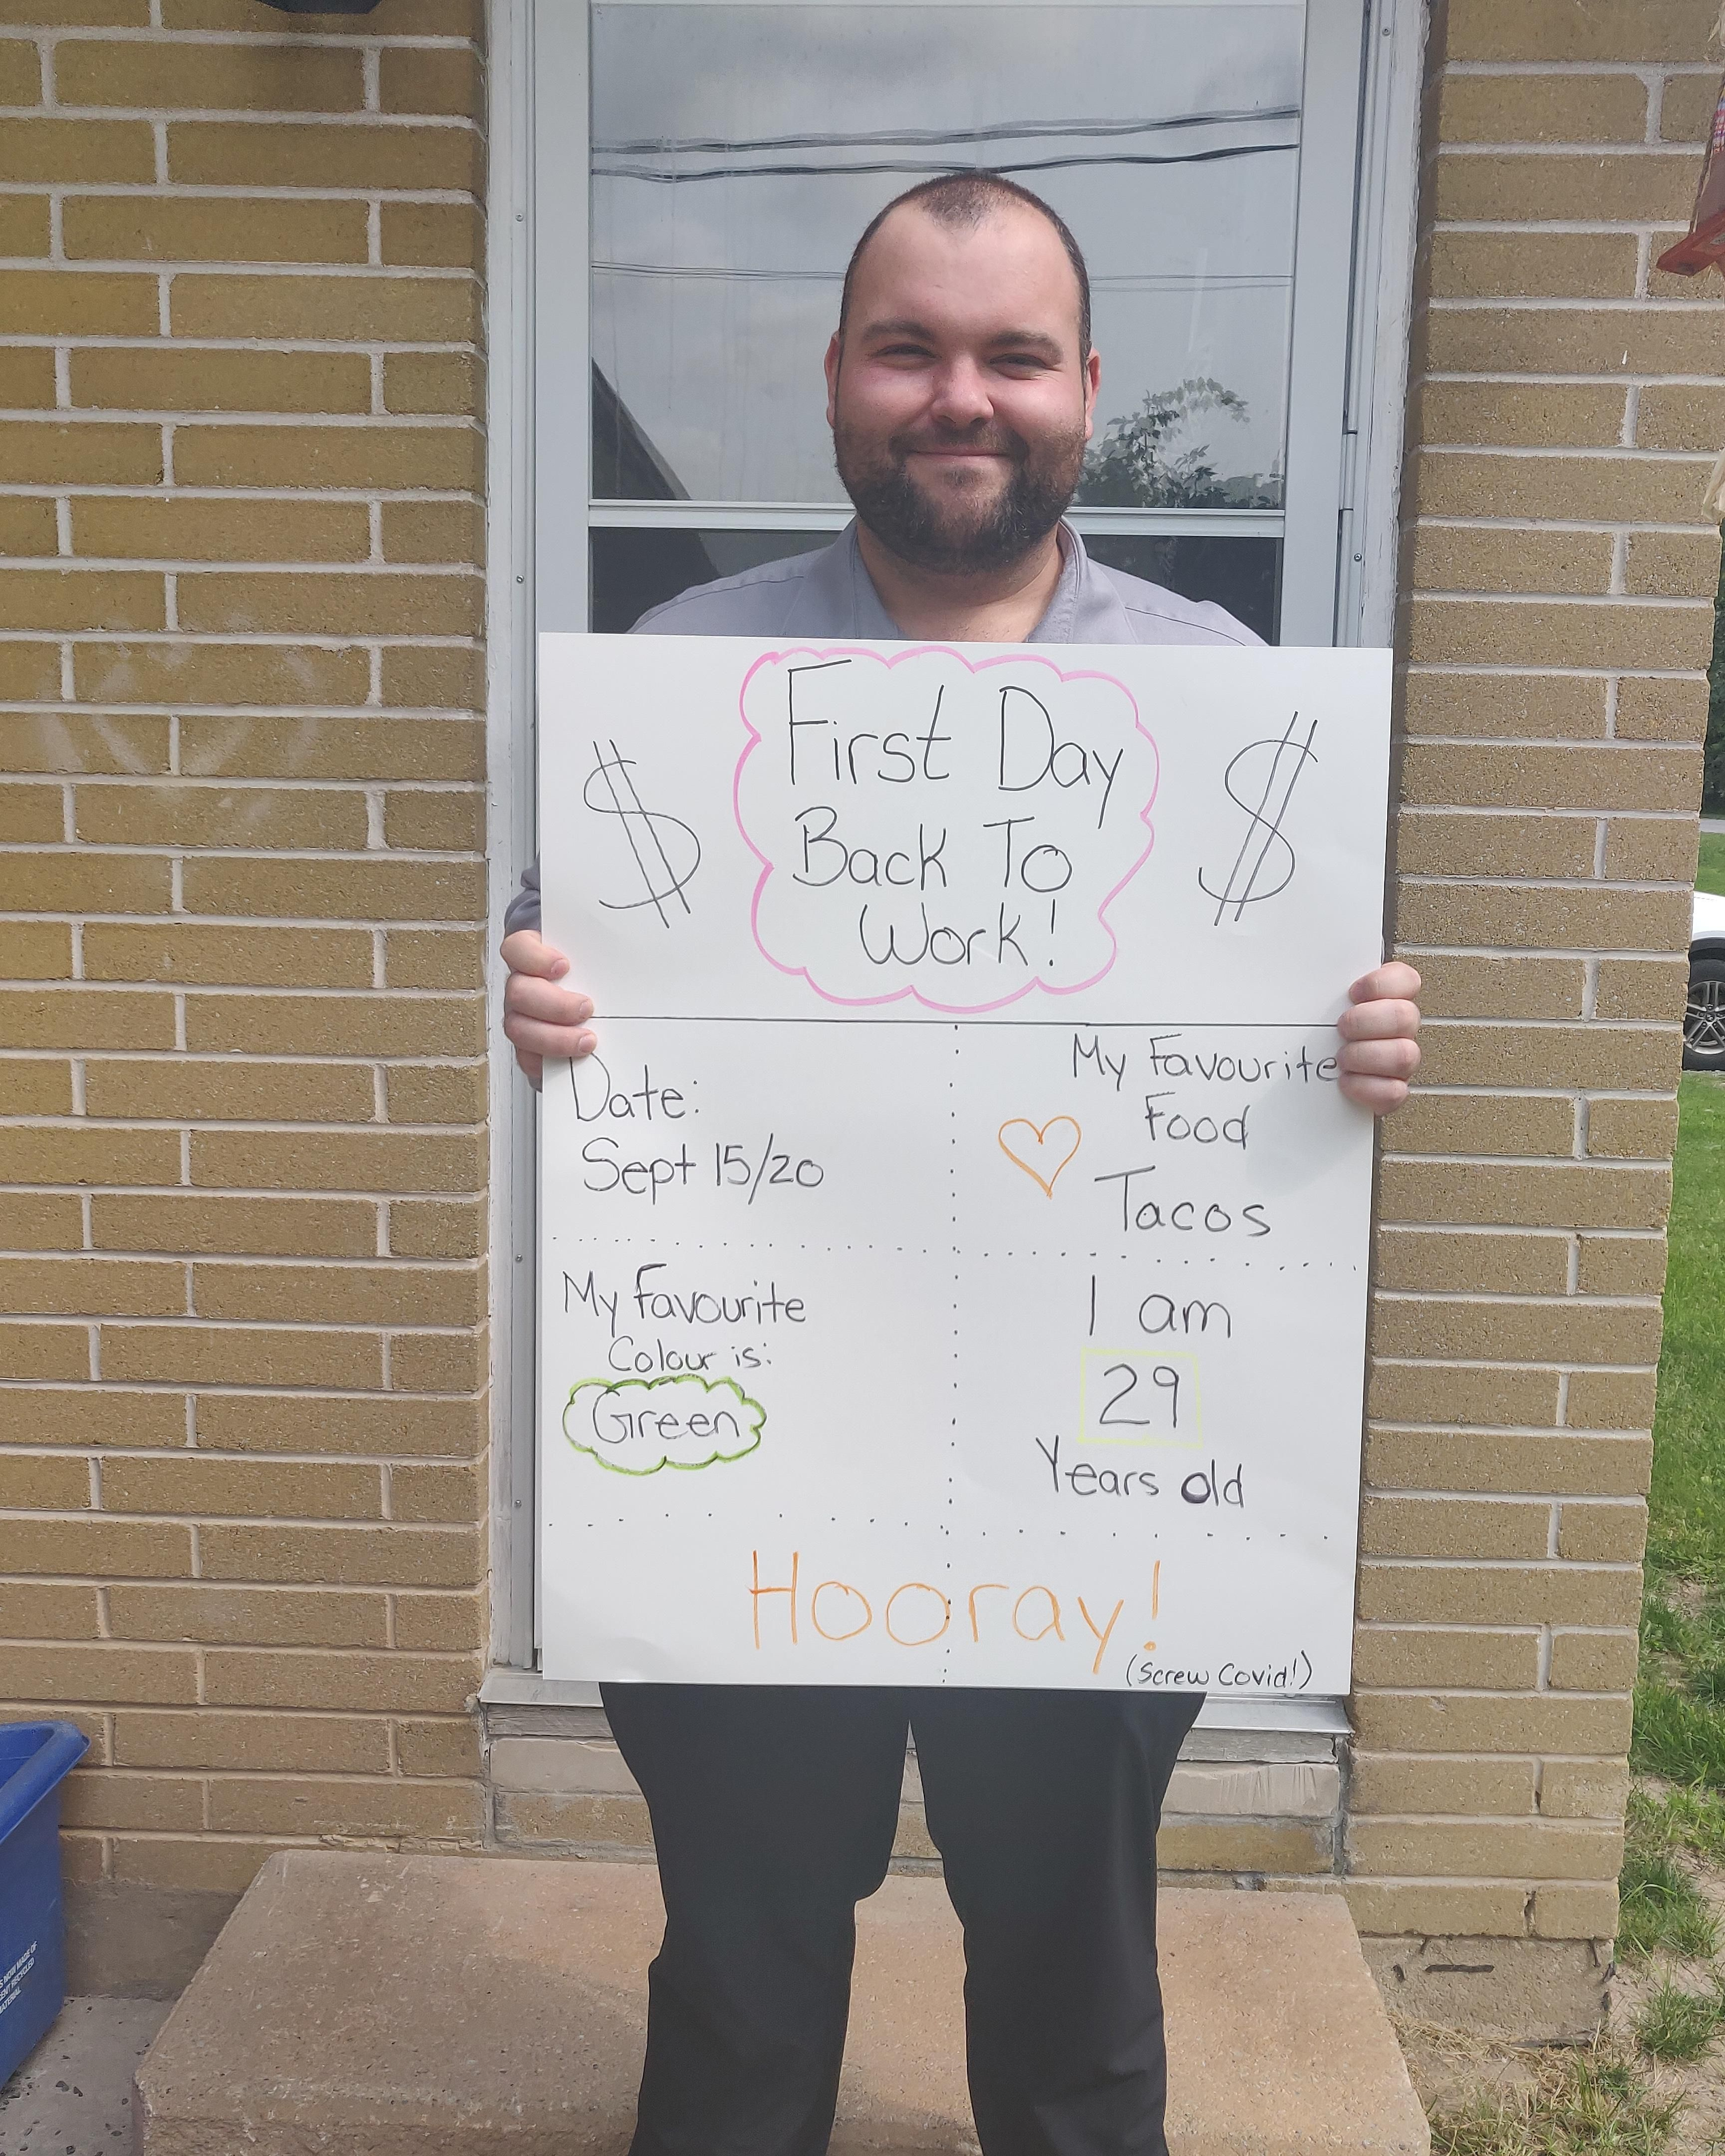 My boyfriend is starting work again after his workplace has been shut down for 6+ months!! He's super excited to start his first day!